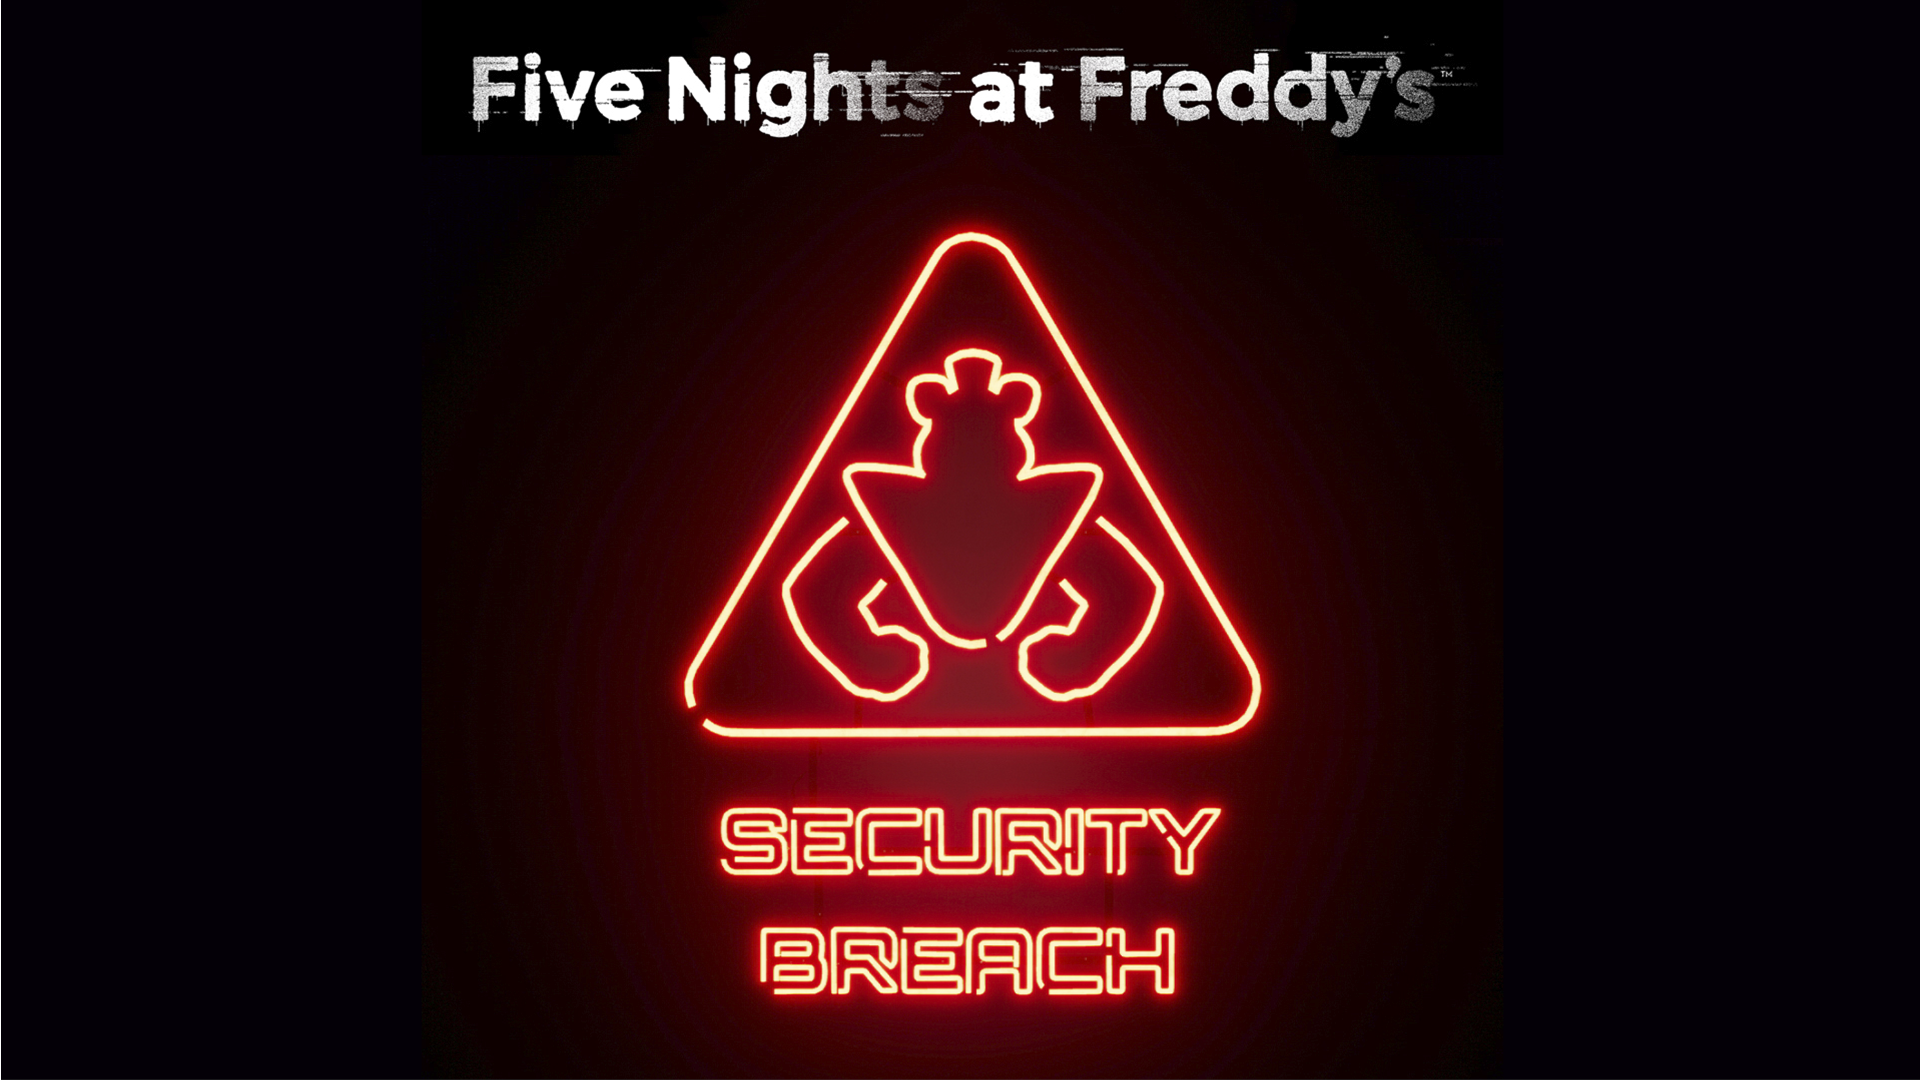 Five Nights at Freddy's: Security Breach – рекламные материалы